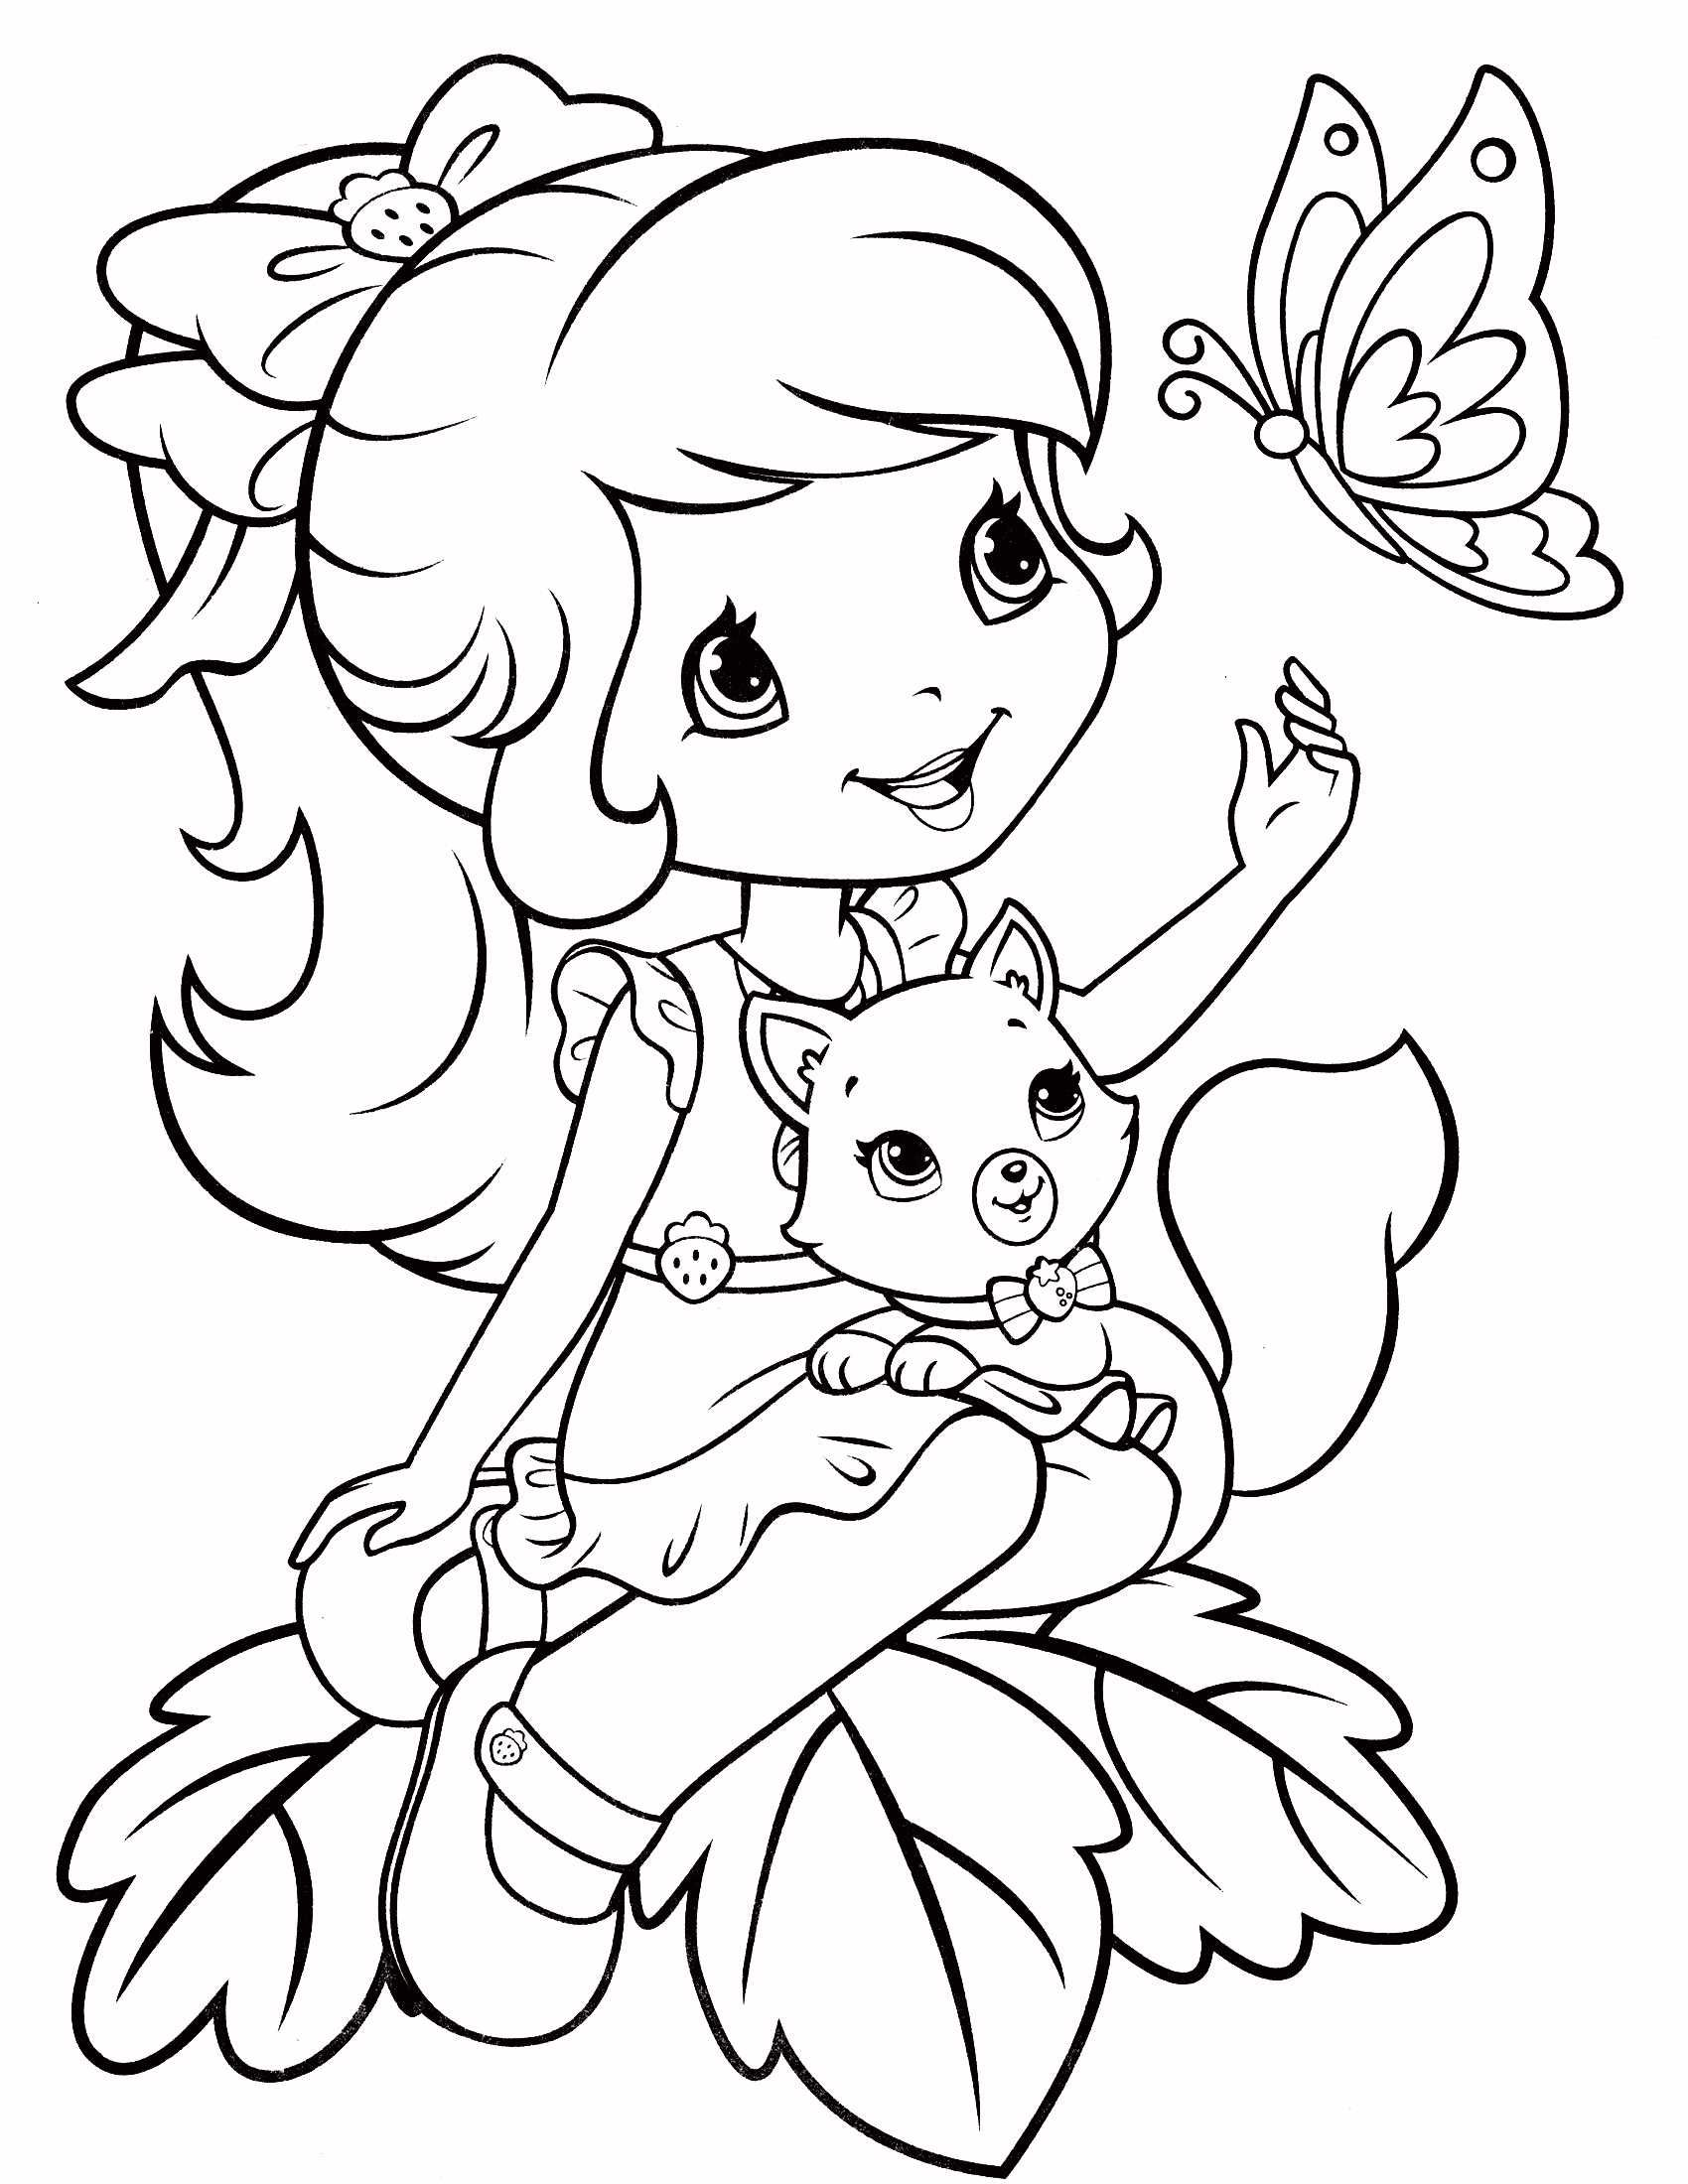 Strawberry Shortcake Coloring Page 73 Jpg 1700 2200 Puppy Coloring Pages Strawberry Shortcake Coloring Pages Free Printable Coloring Pages